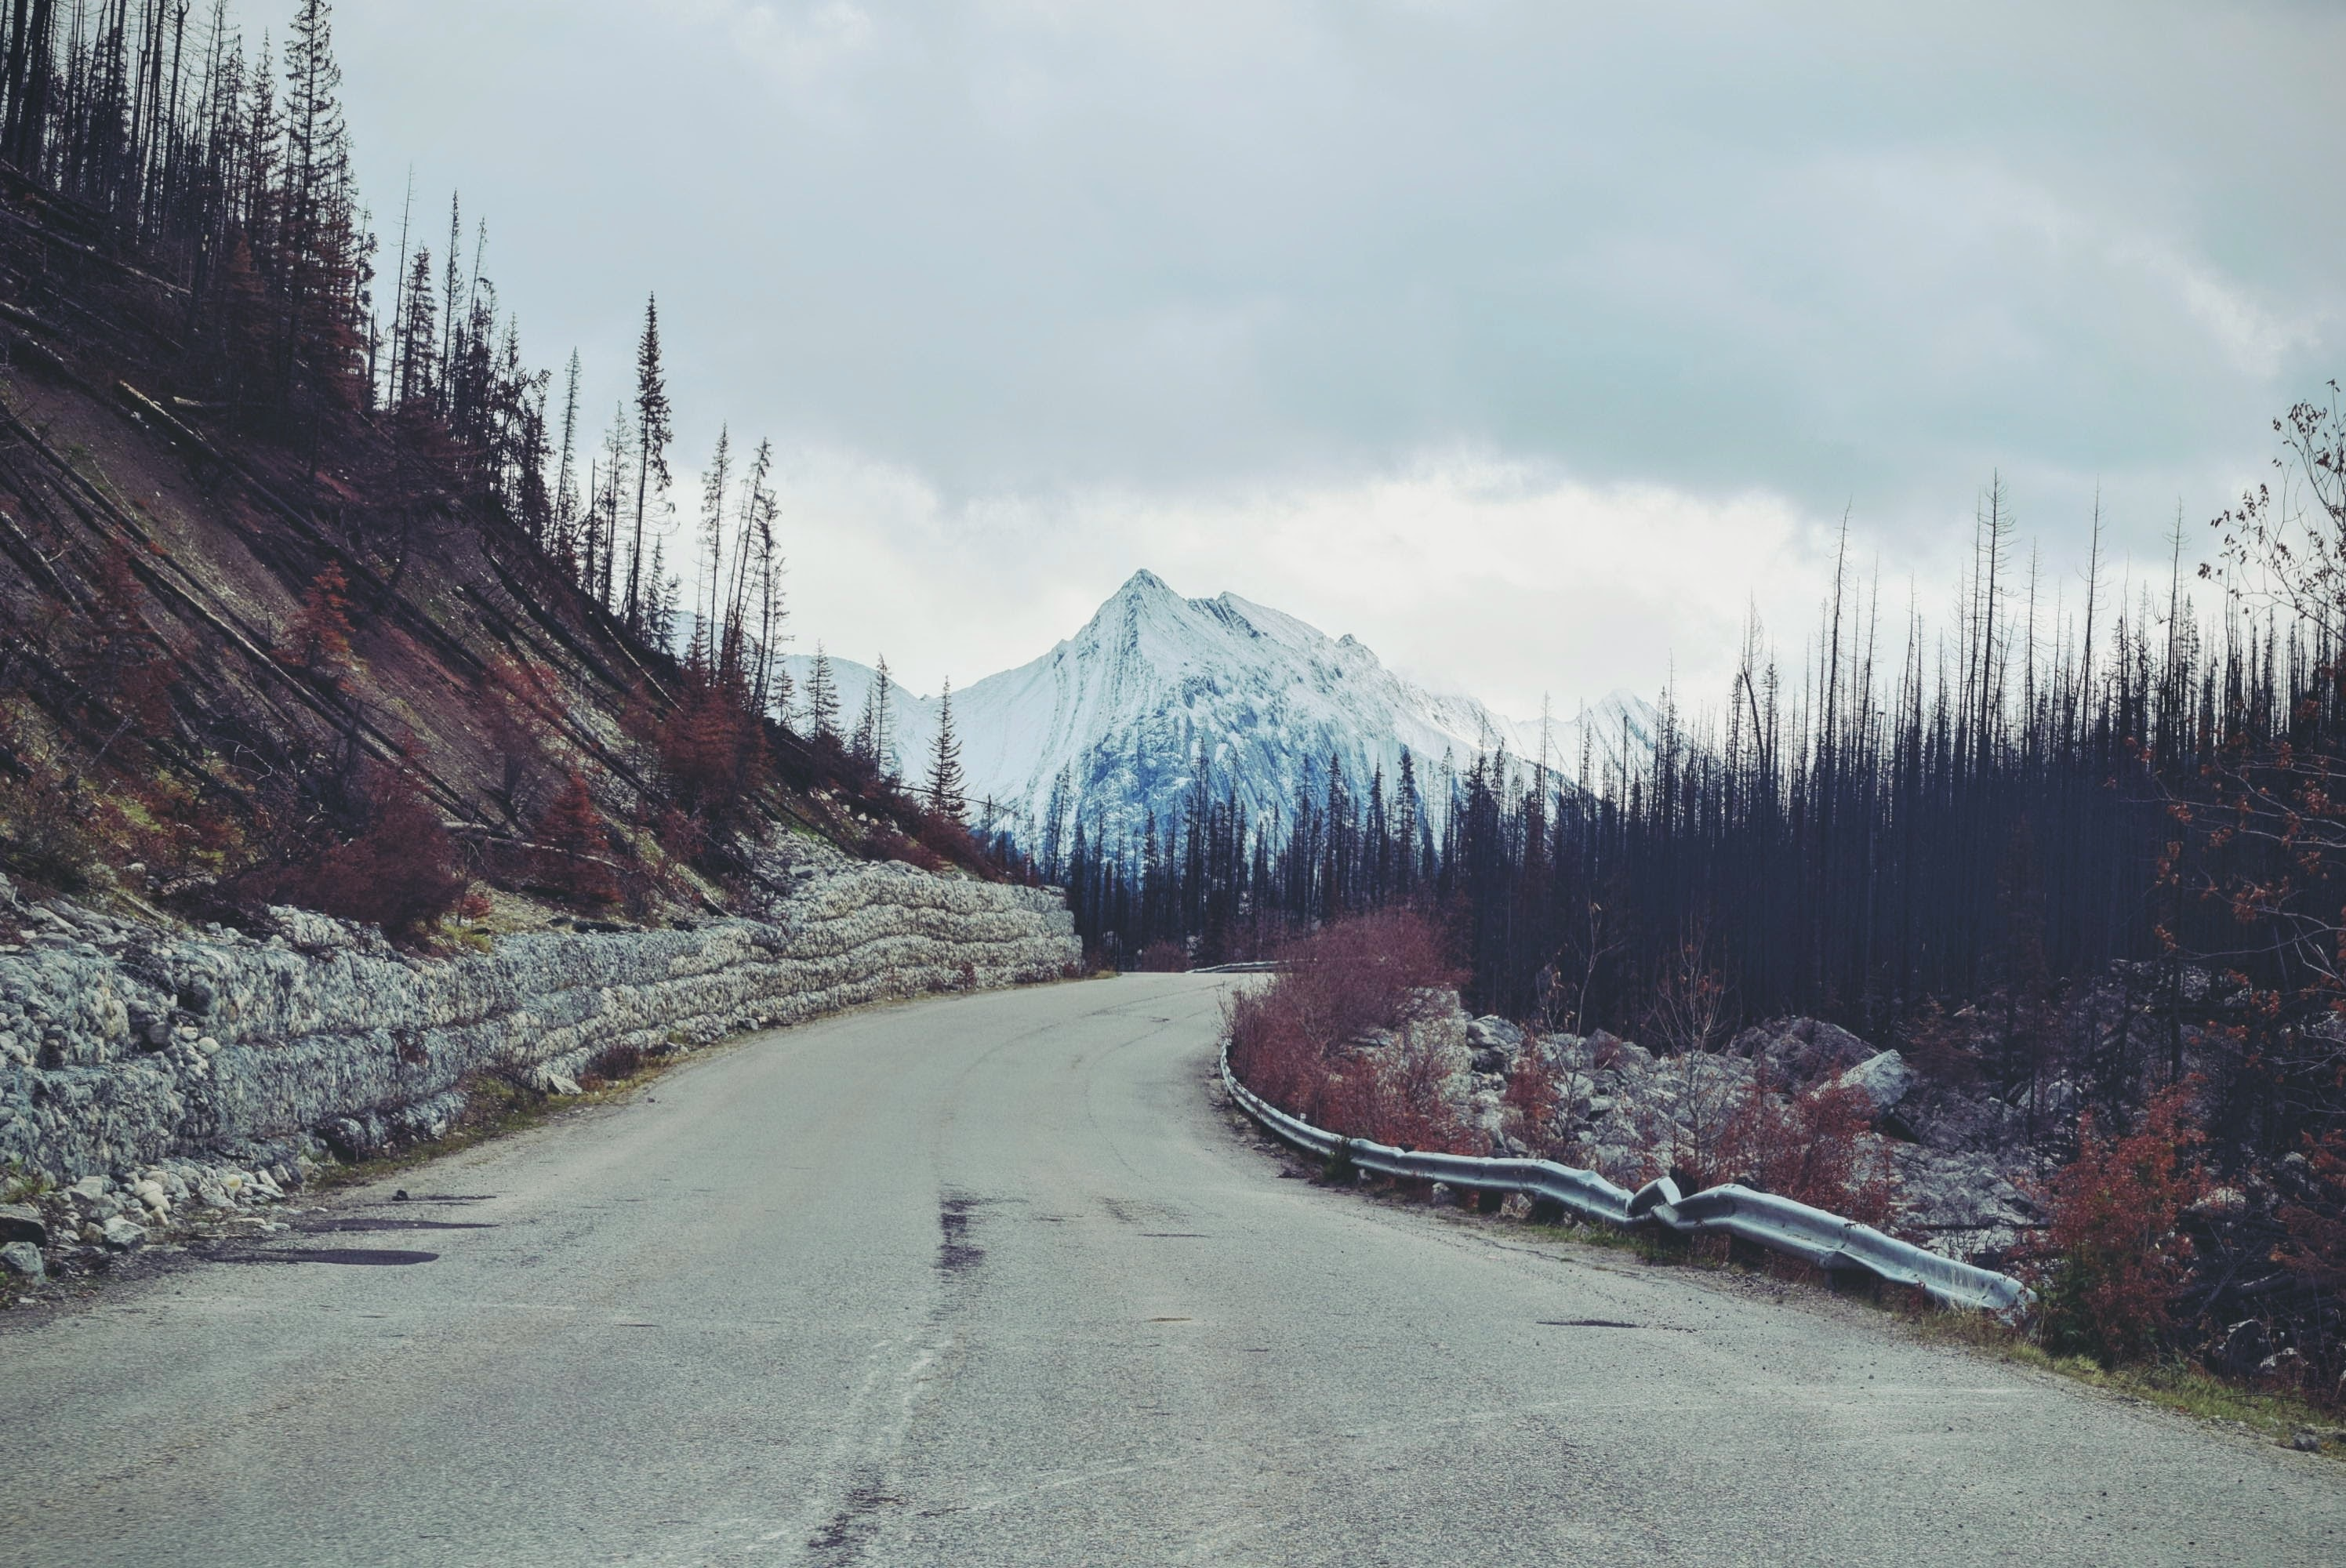 gray asphalt road towards snow covered mountain during daytime